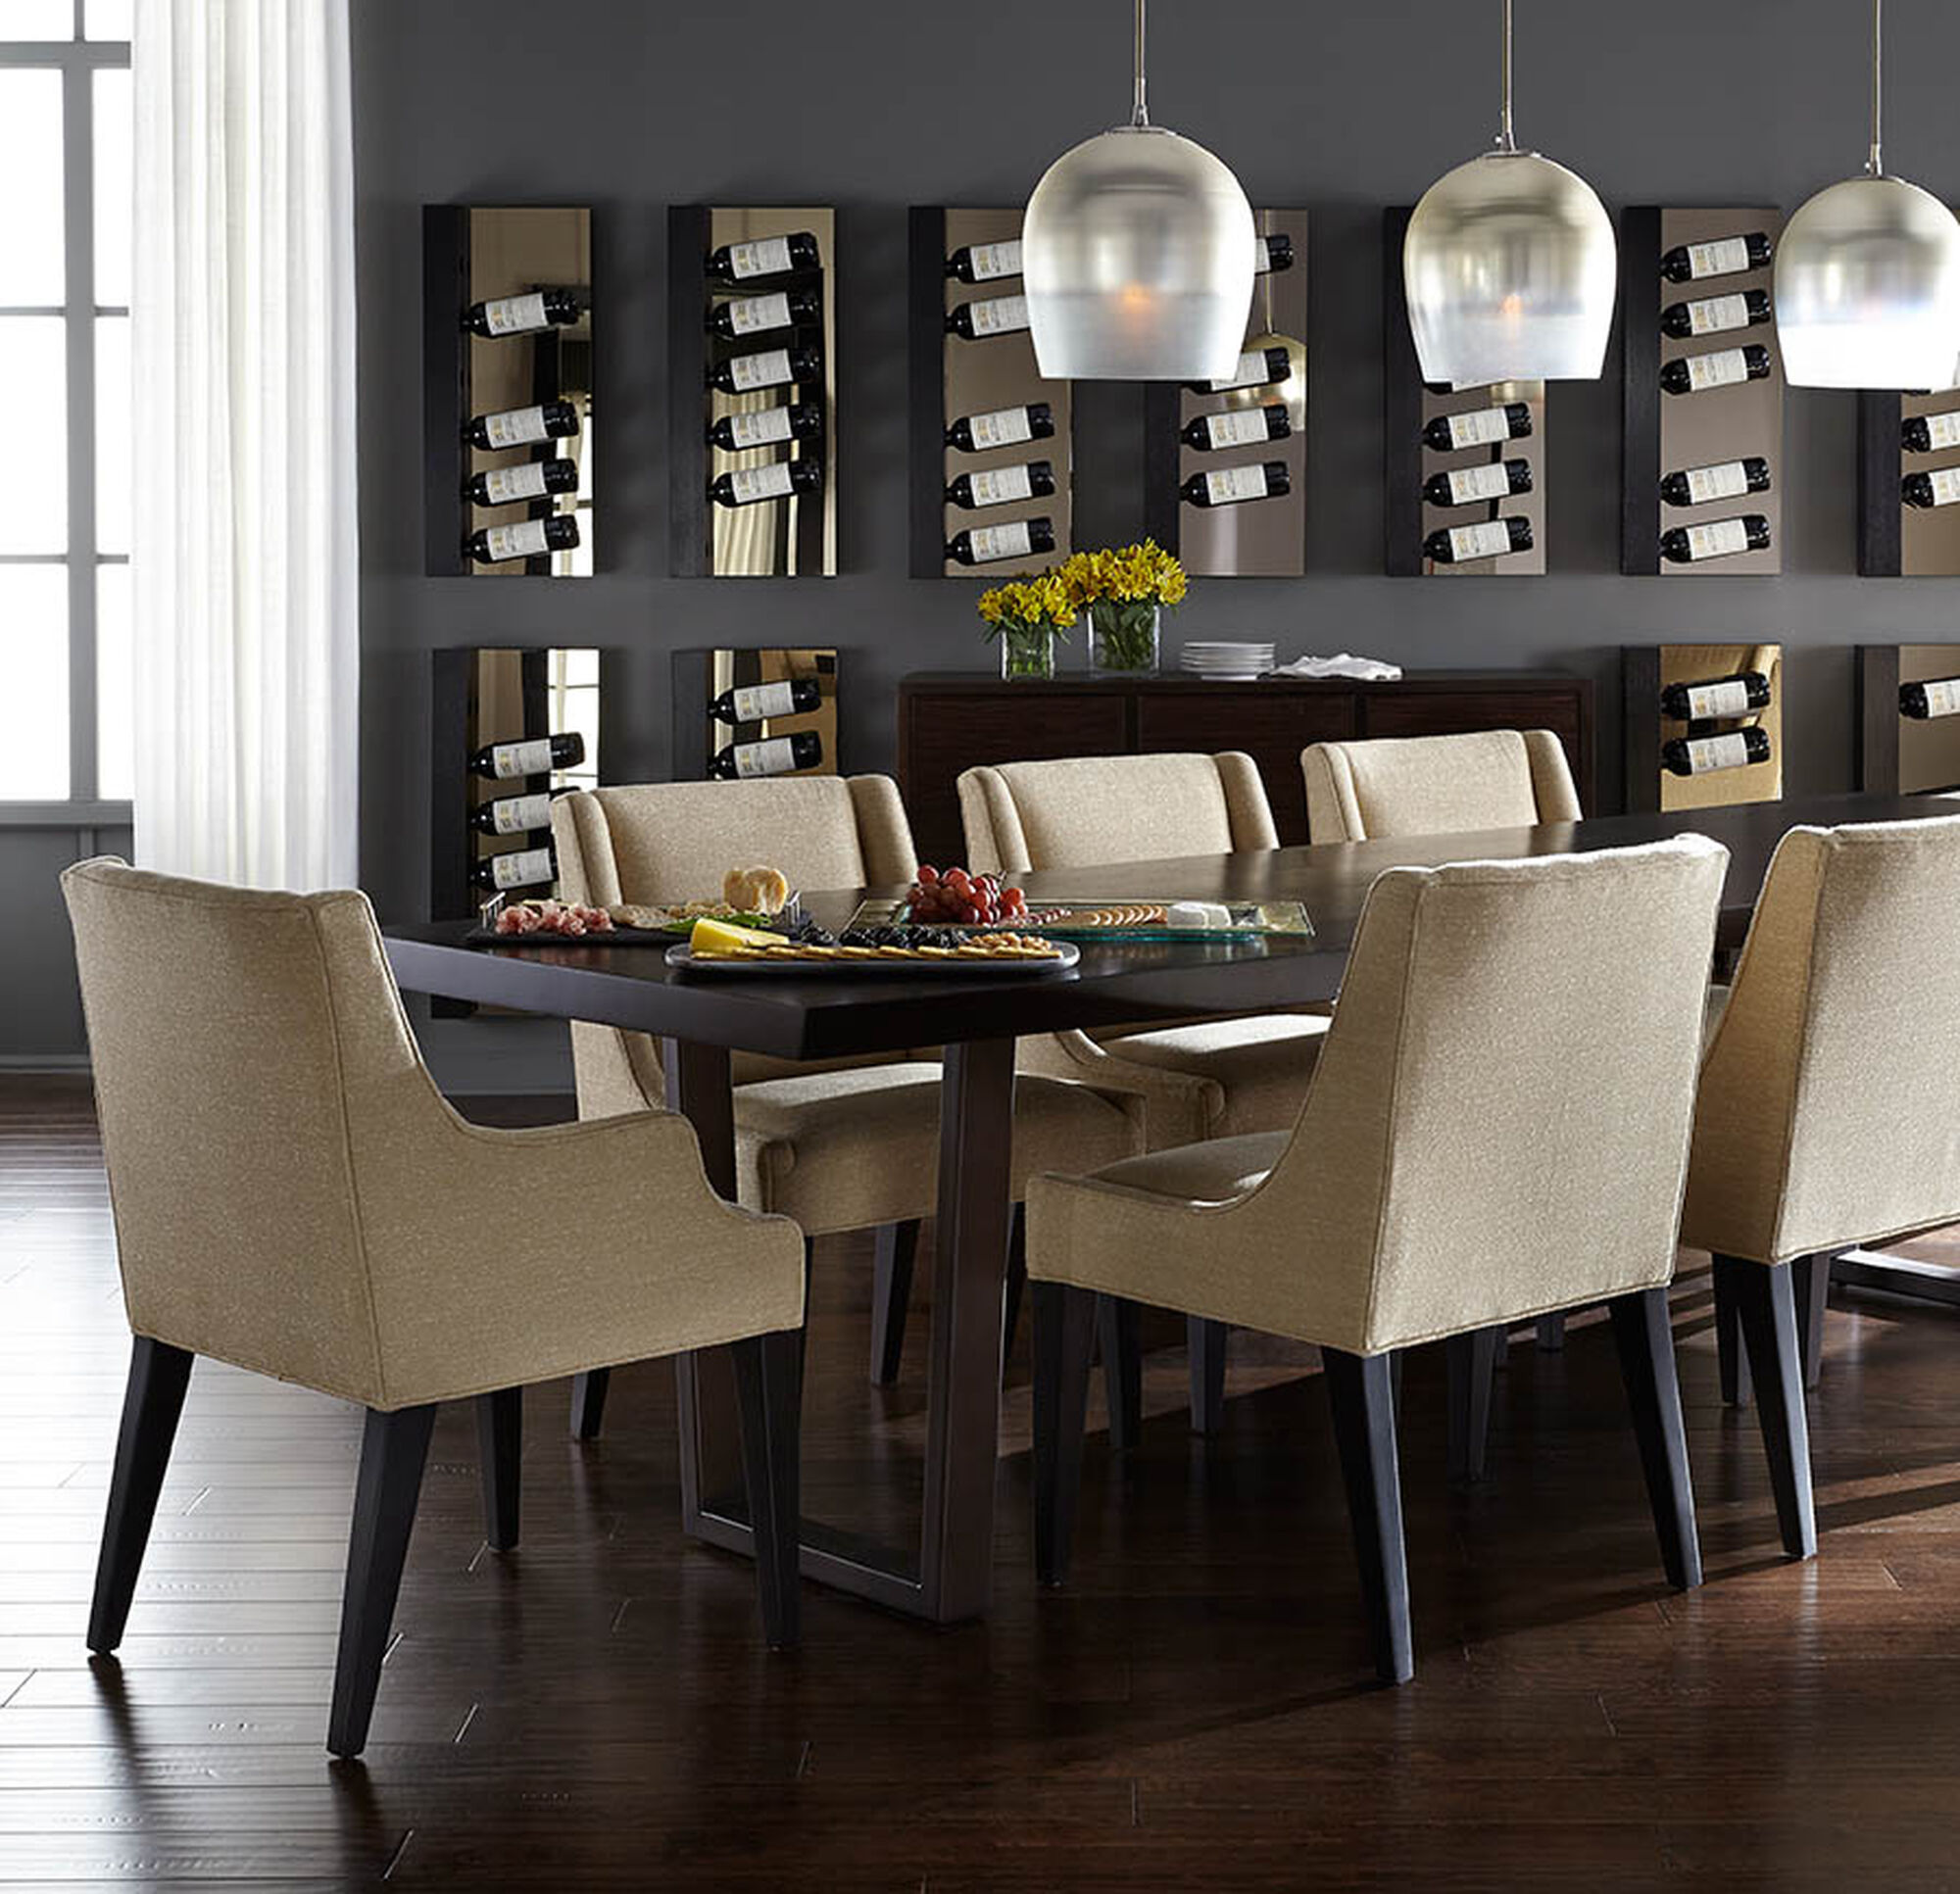 crosby collection large pendant light. Contemporary Crosby Crosby Collection Large Pendant Light Crosby Collection Large Pendant Light And